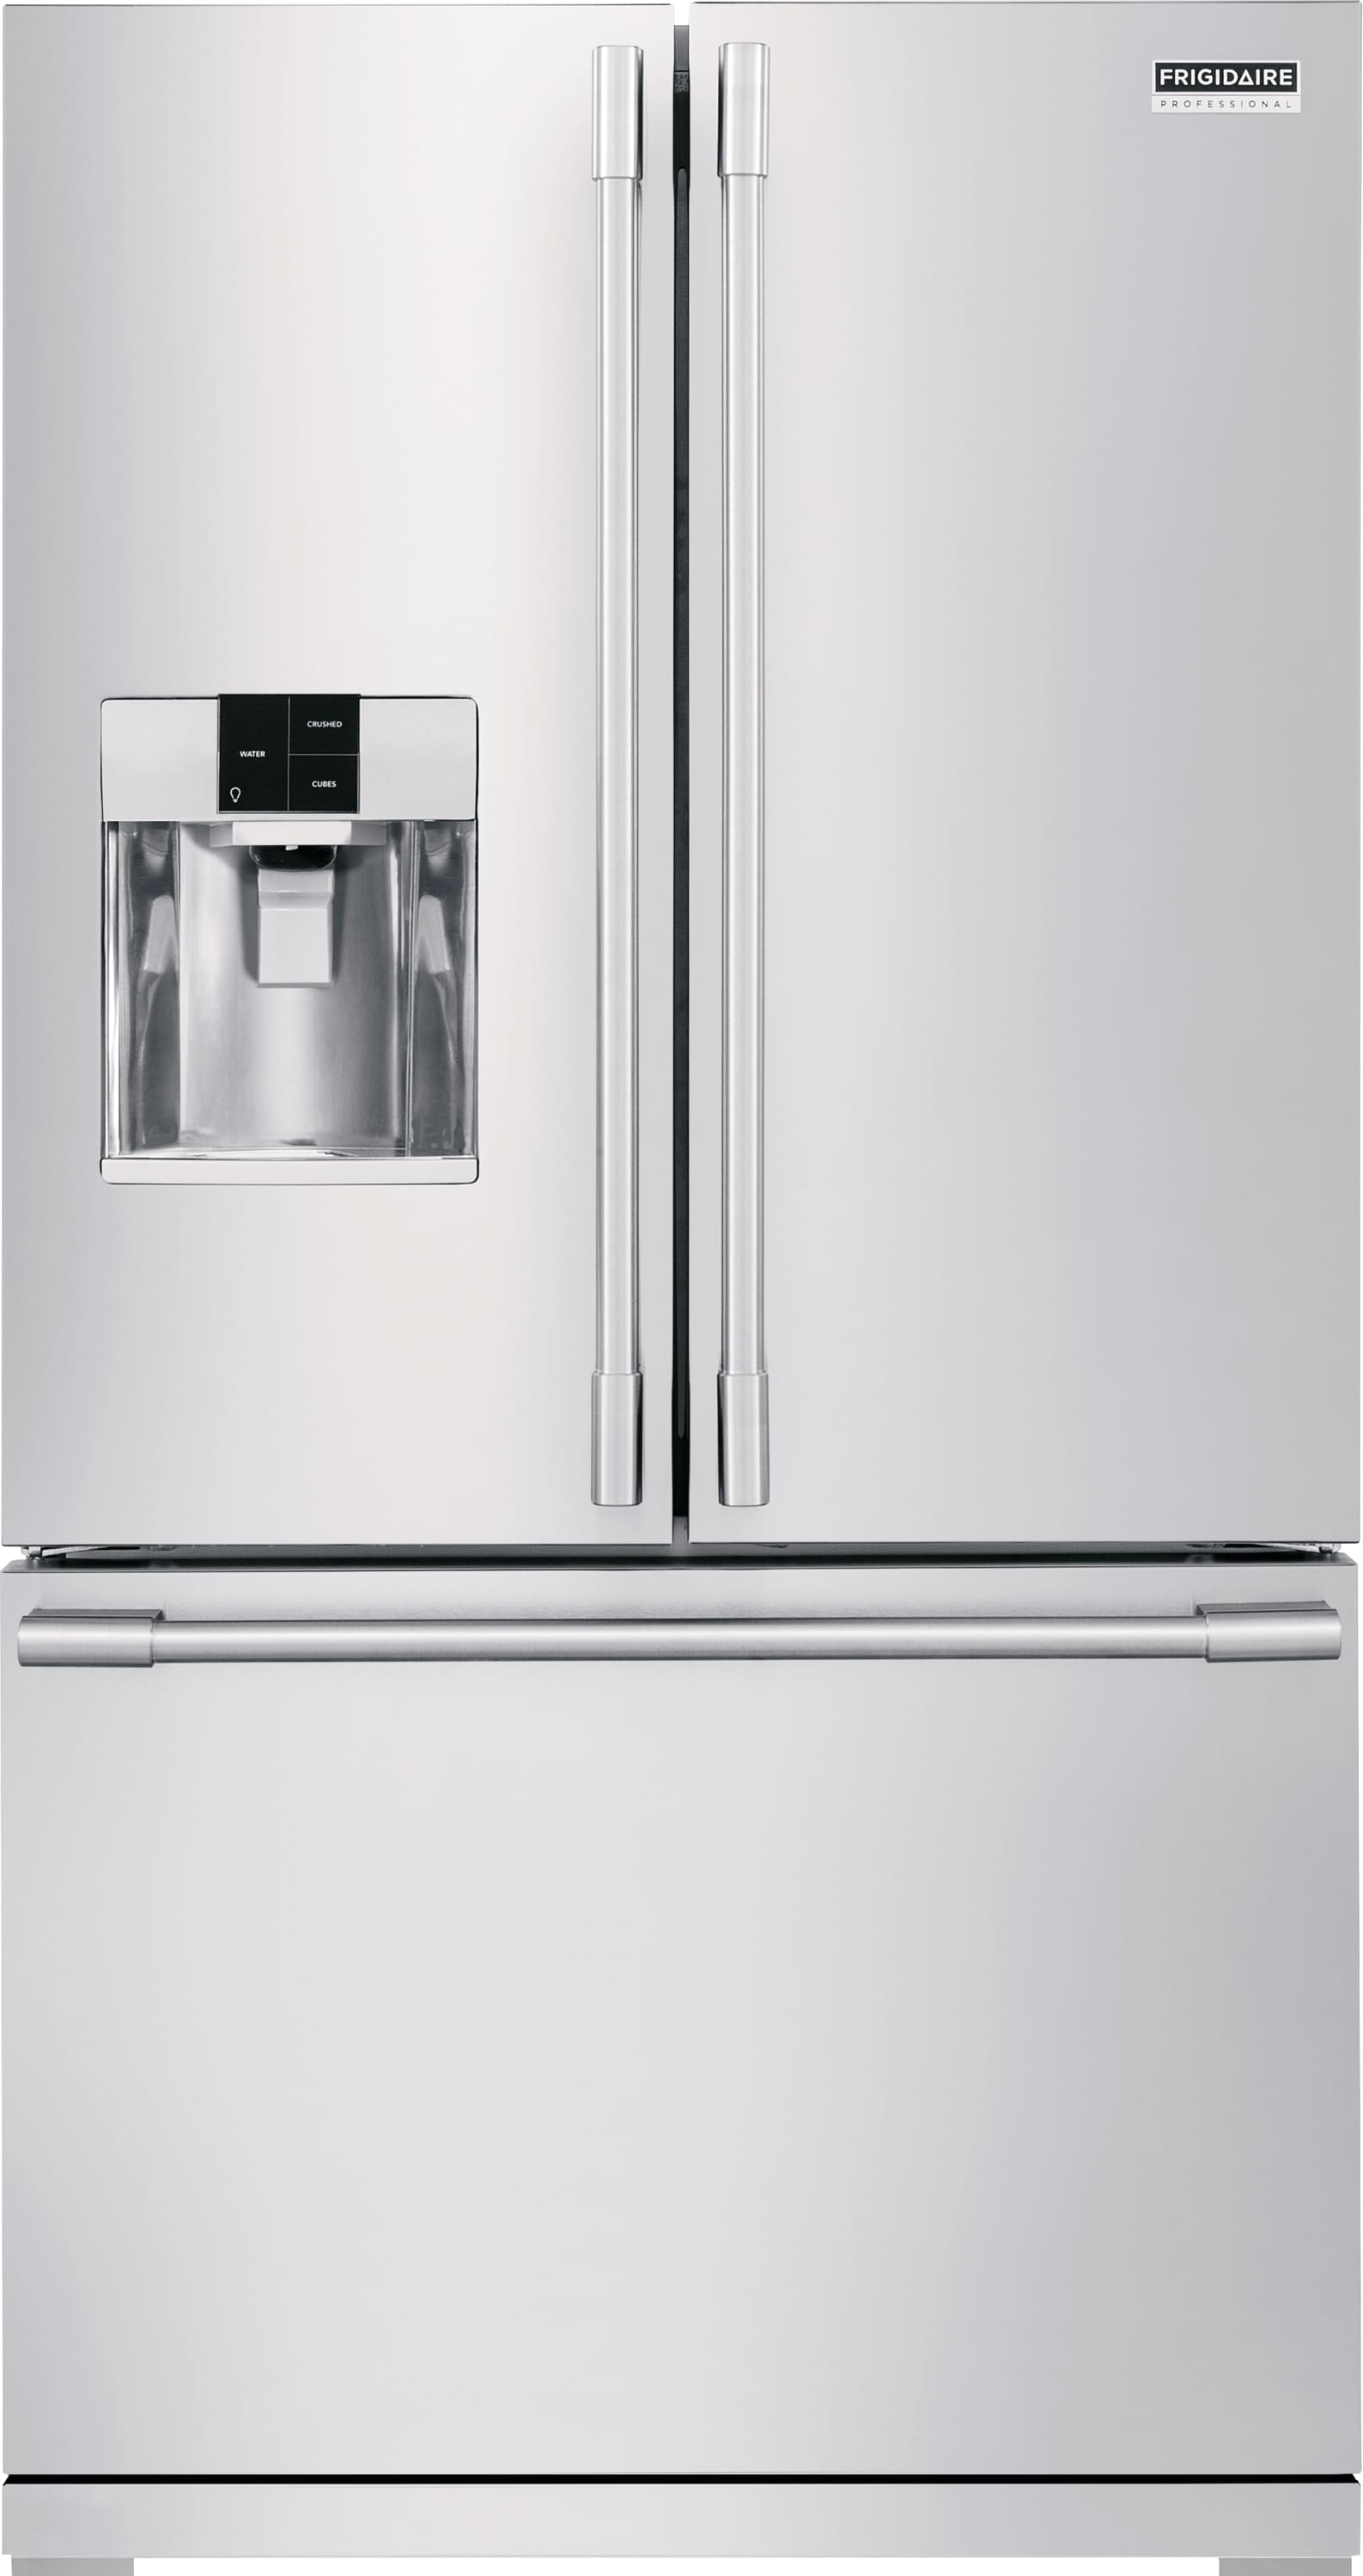 26.7 Cu. Ft. French Door Refrigerator